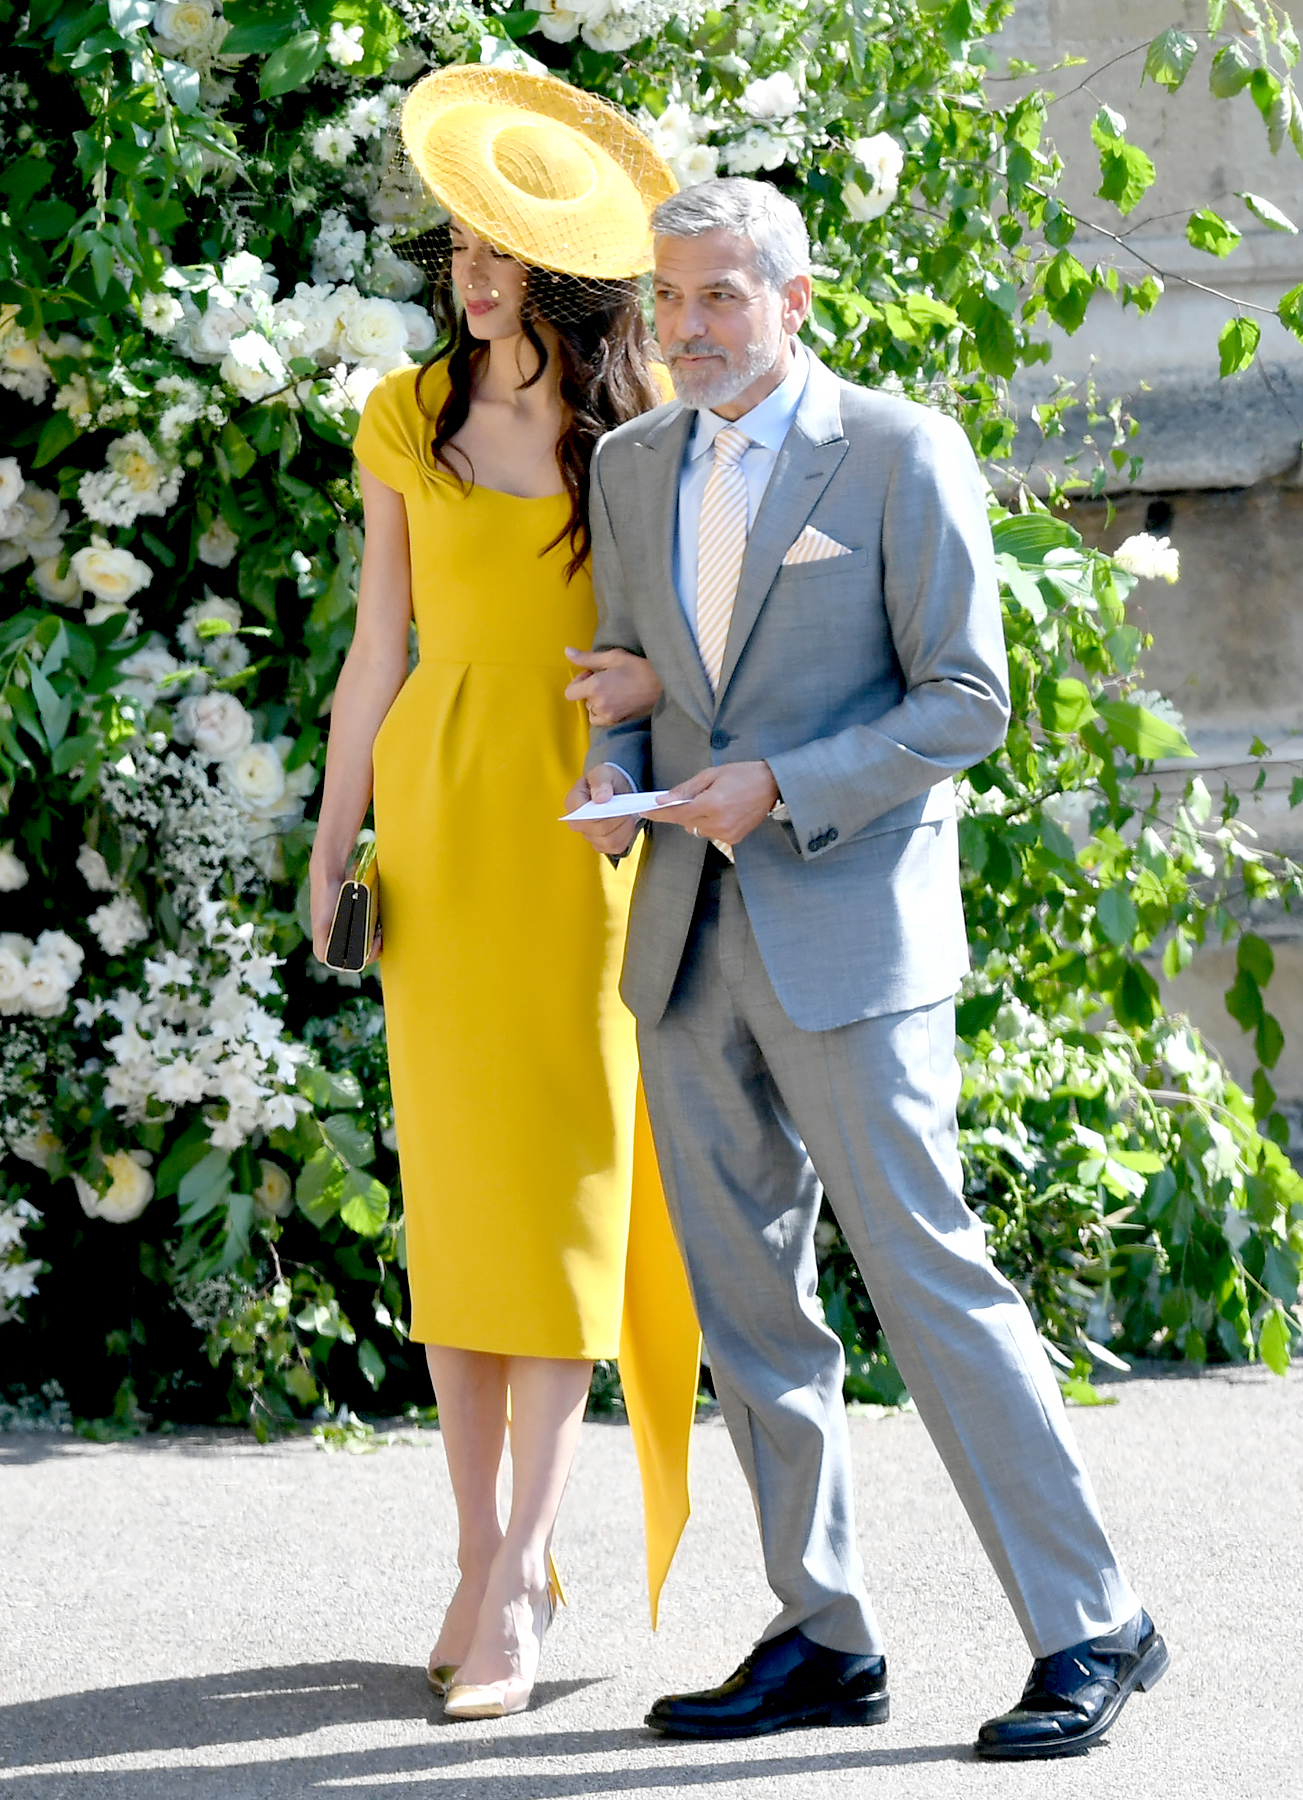 c80e0d24fec Royal Wedding 2018  See What the Guests Wore to the Services